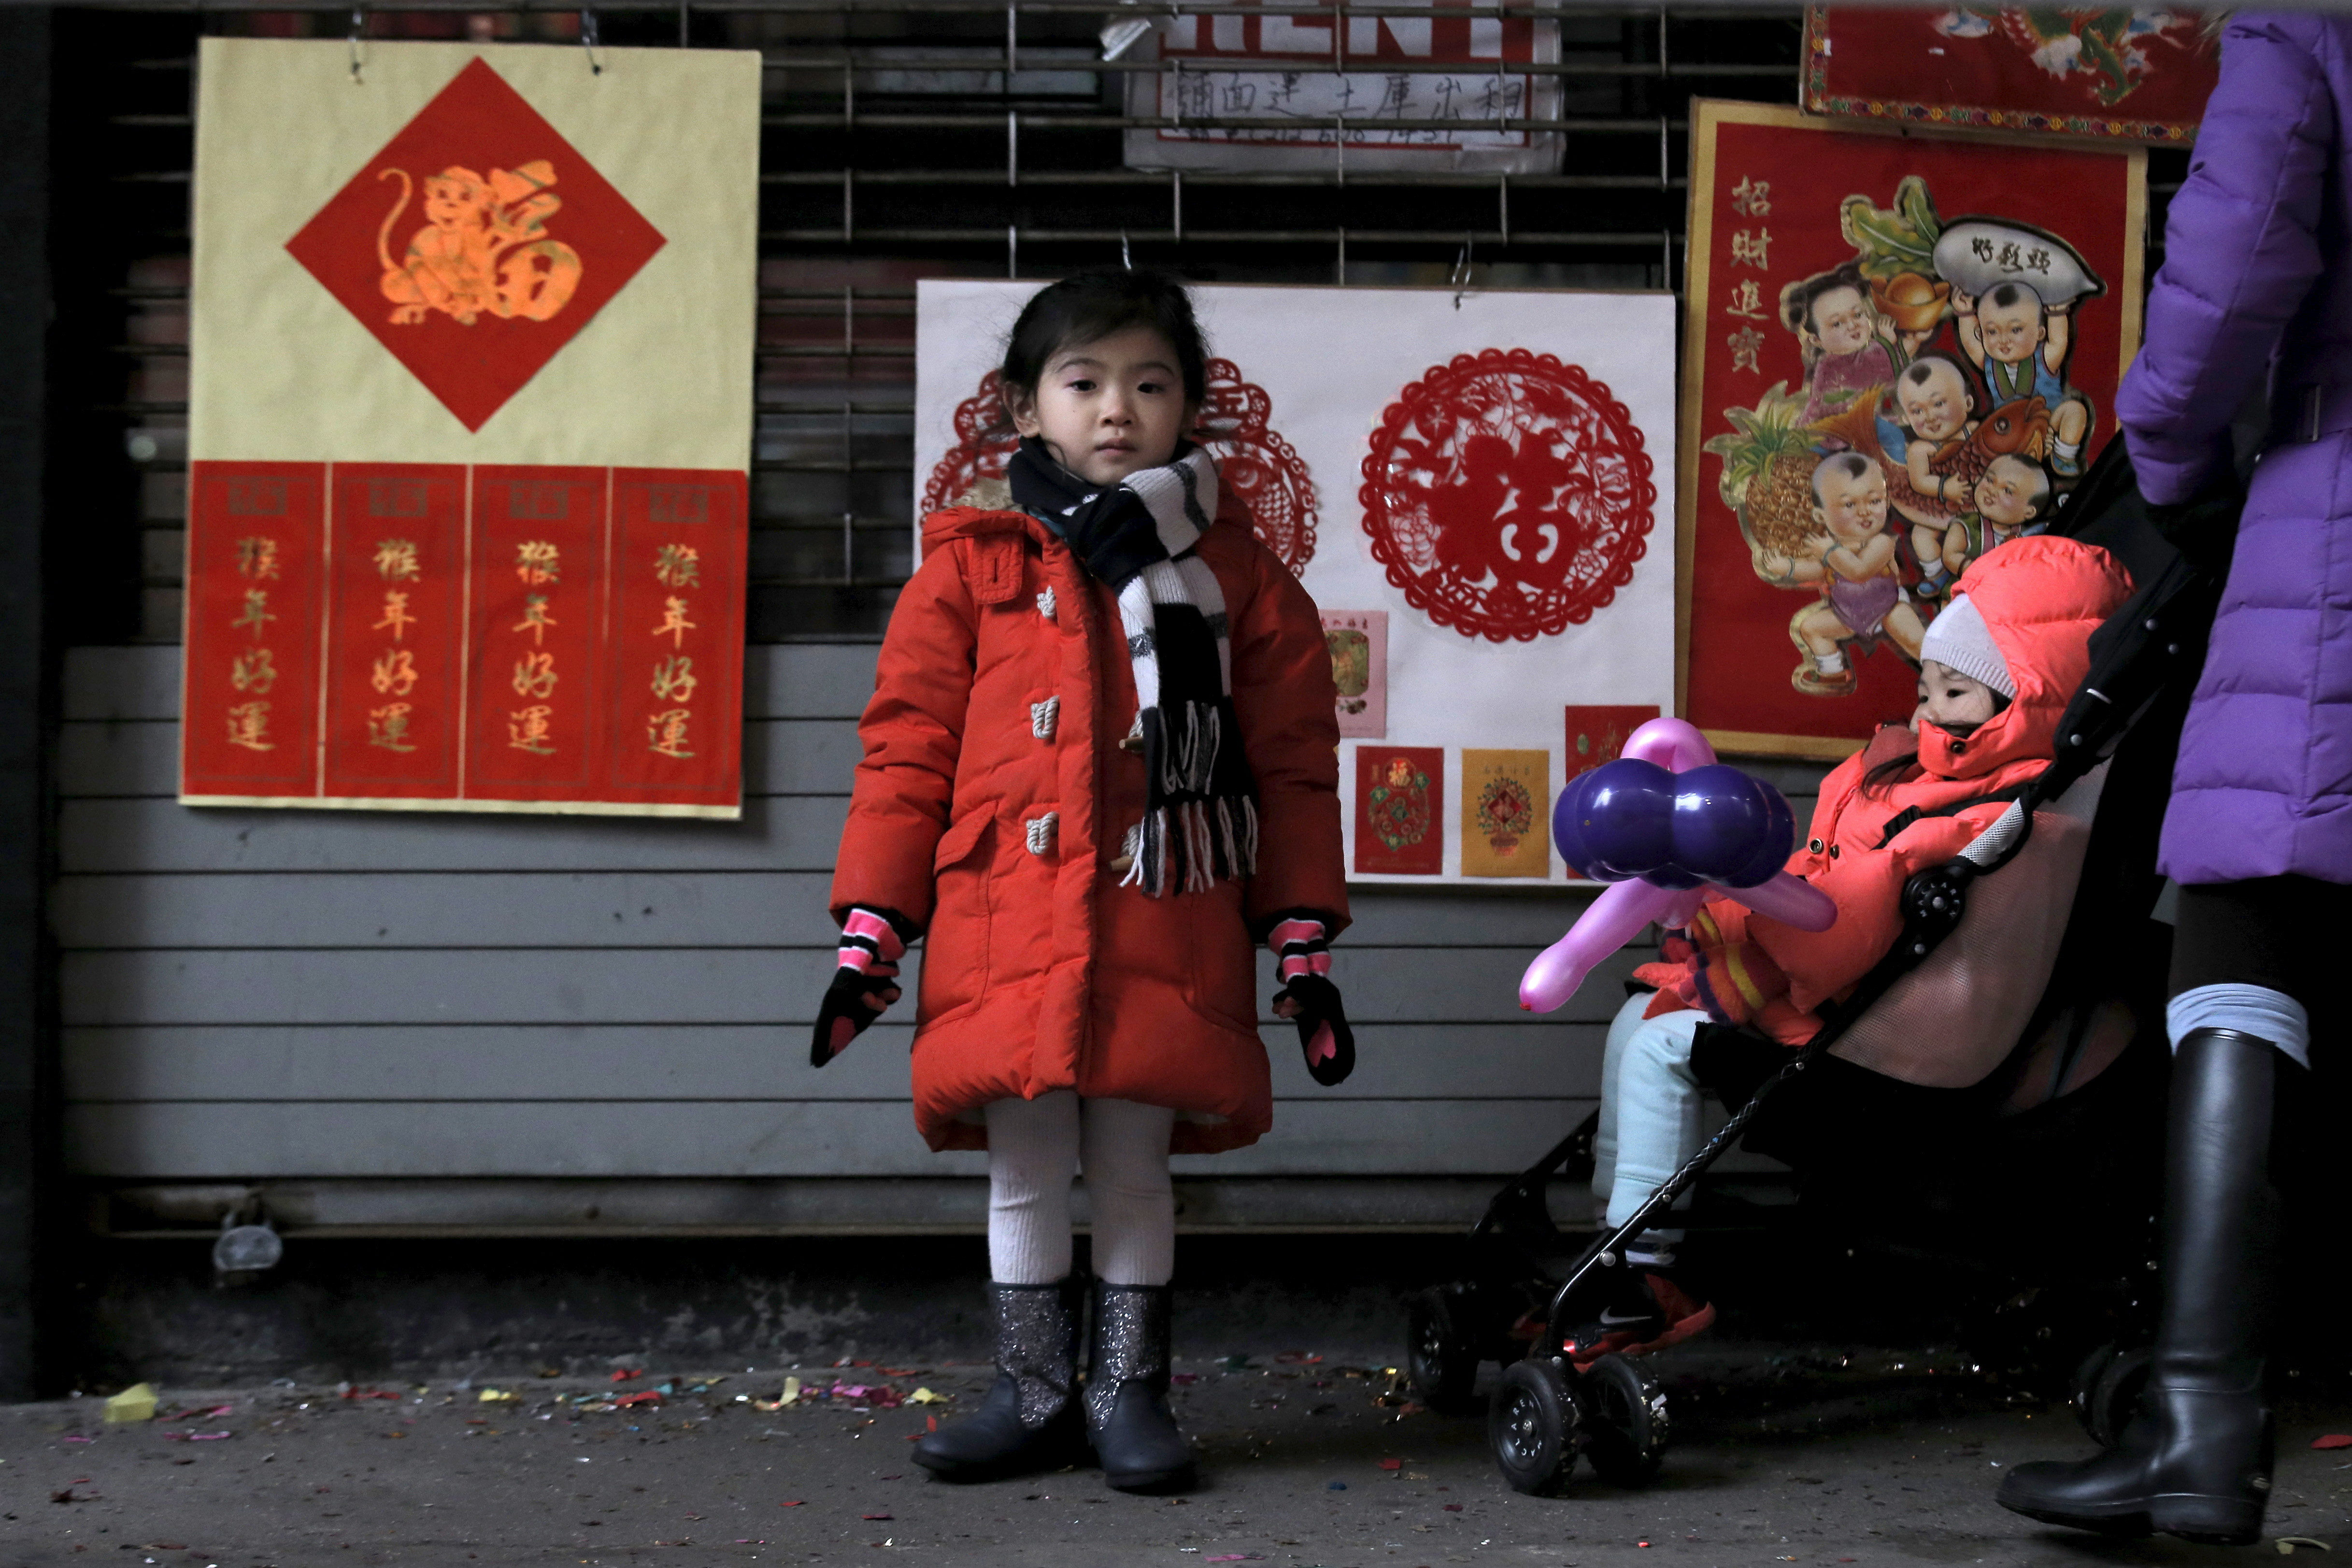 A little girl watches a lion dance during the celebration of the Chinese Lunar New Year in Manhattan's Chinatown in New York February 8, 2016. REUTERS/Brendan McDermid  - RTX262EB